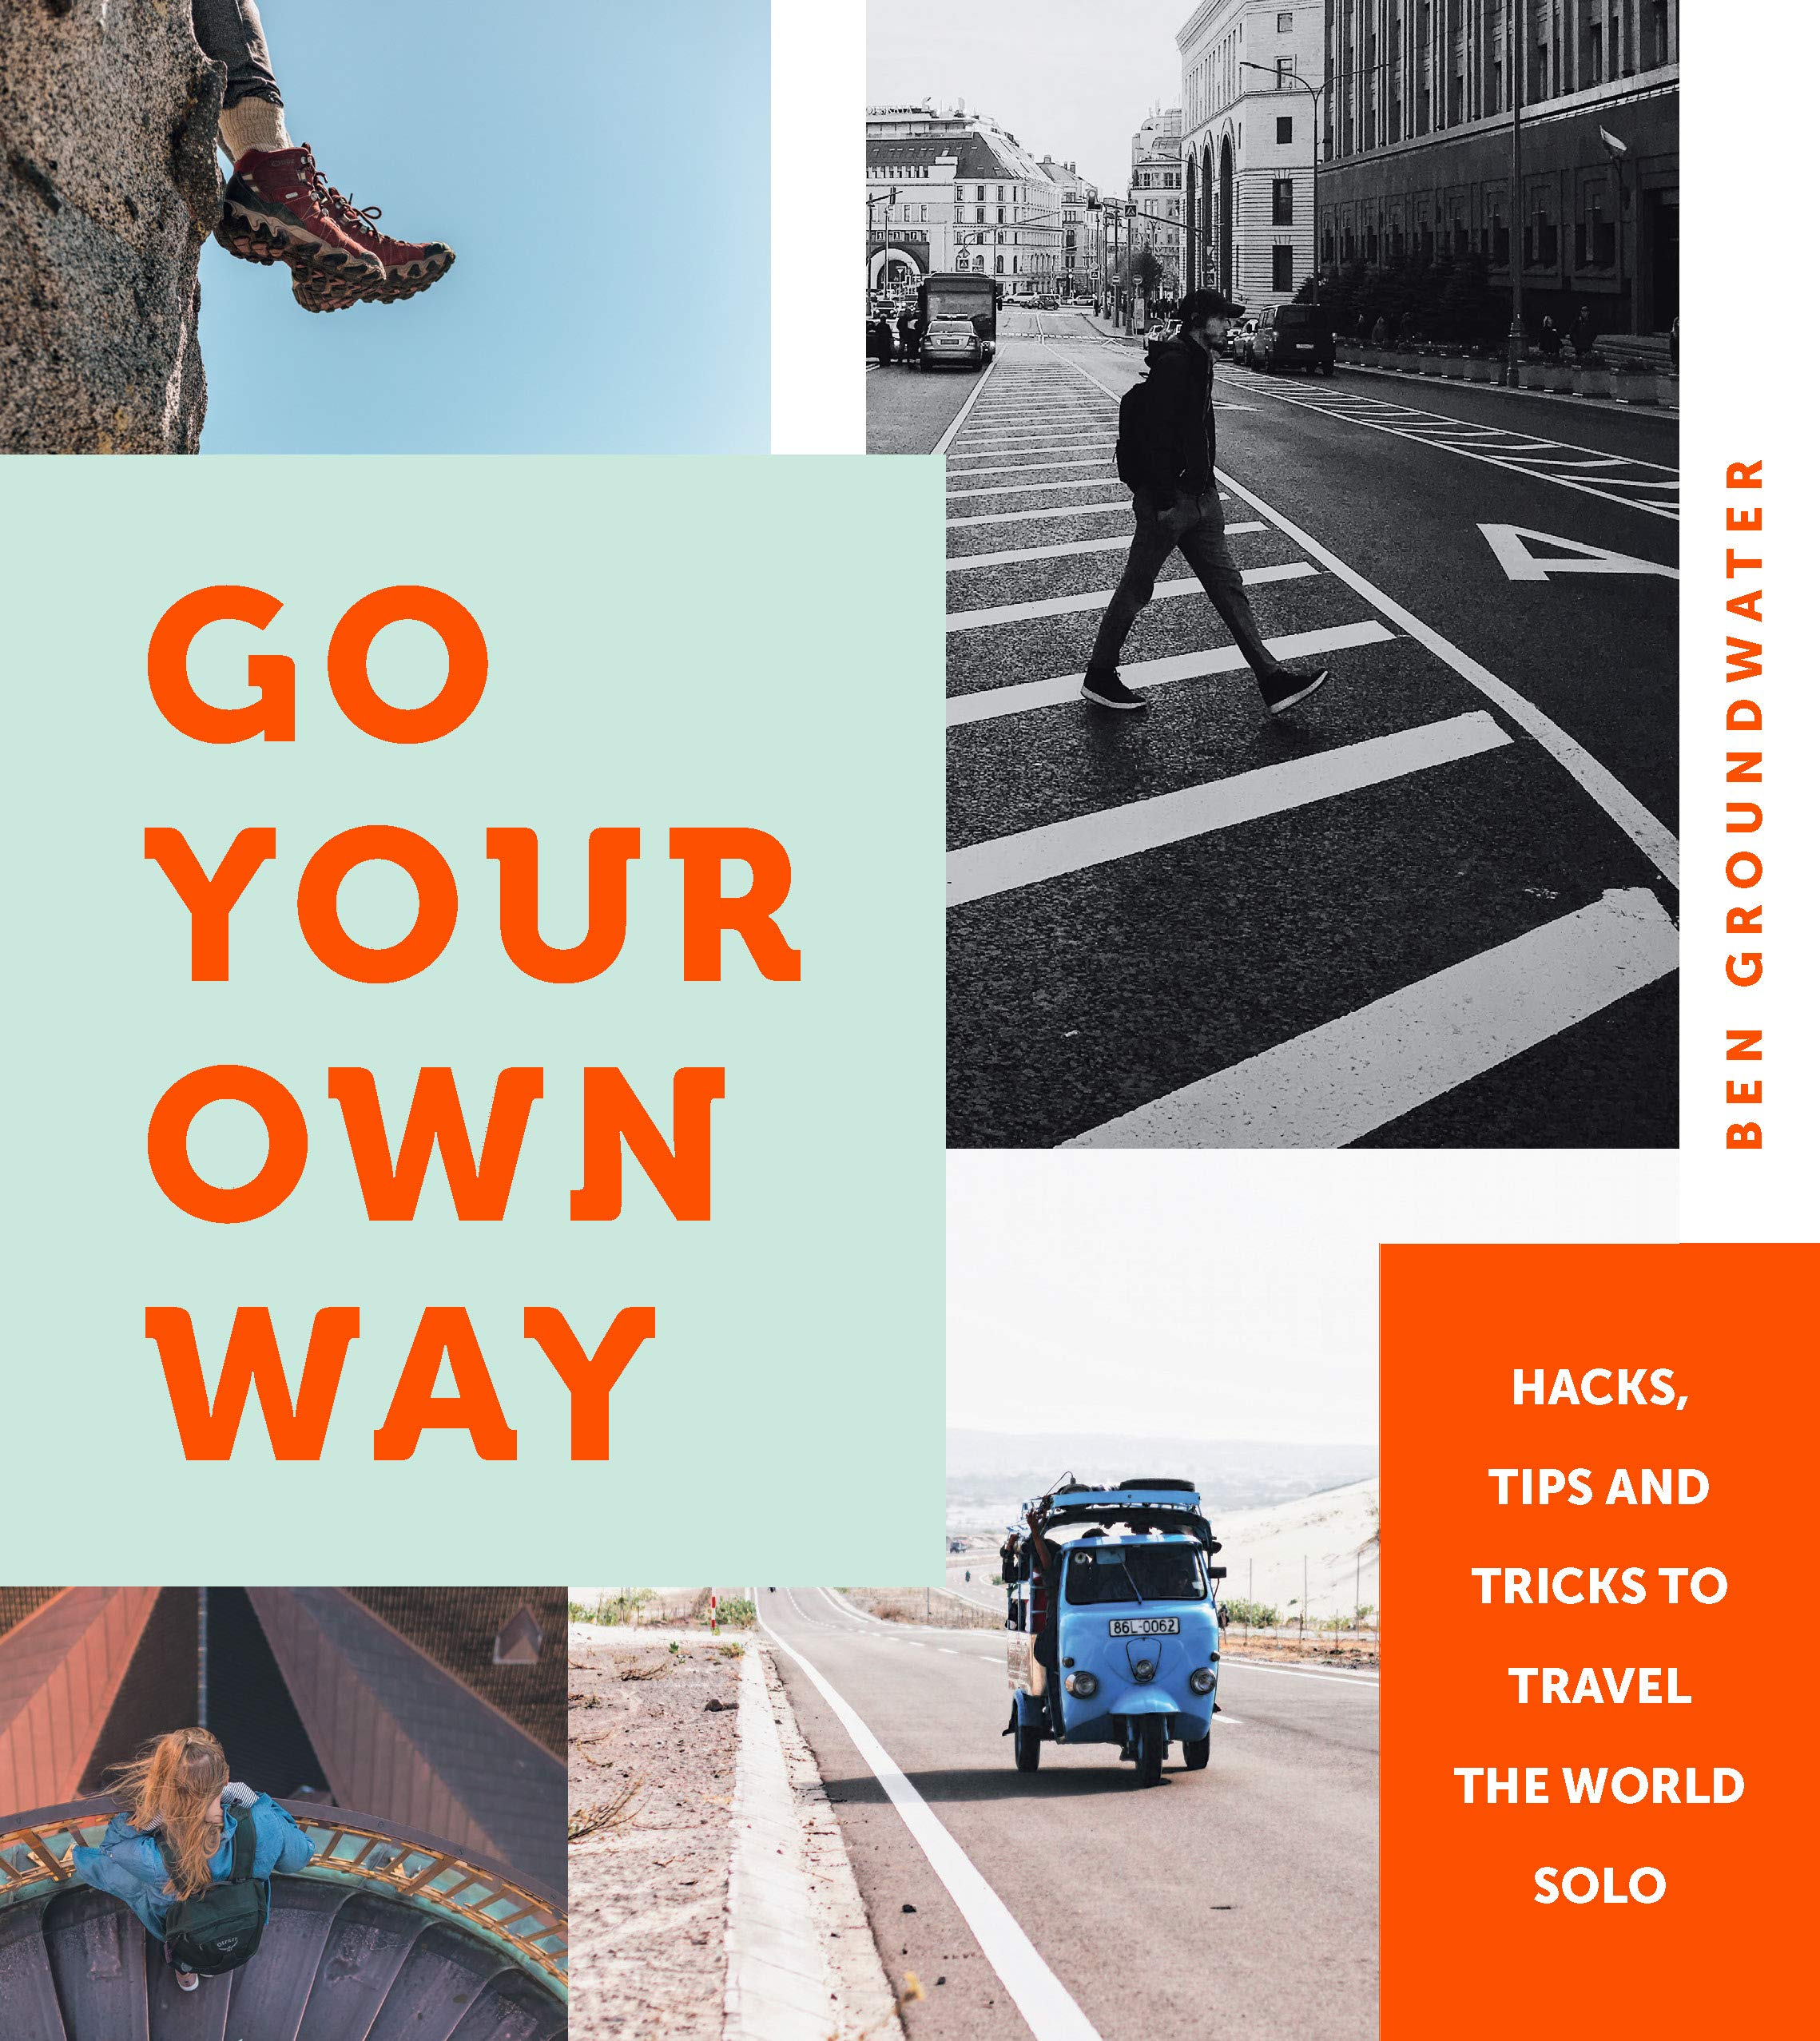 Go Your Own Way: Hacks, Tips and Tricks to Travel the World